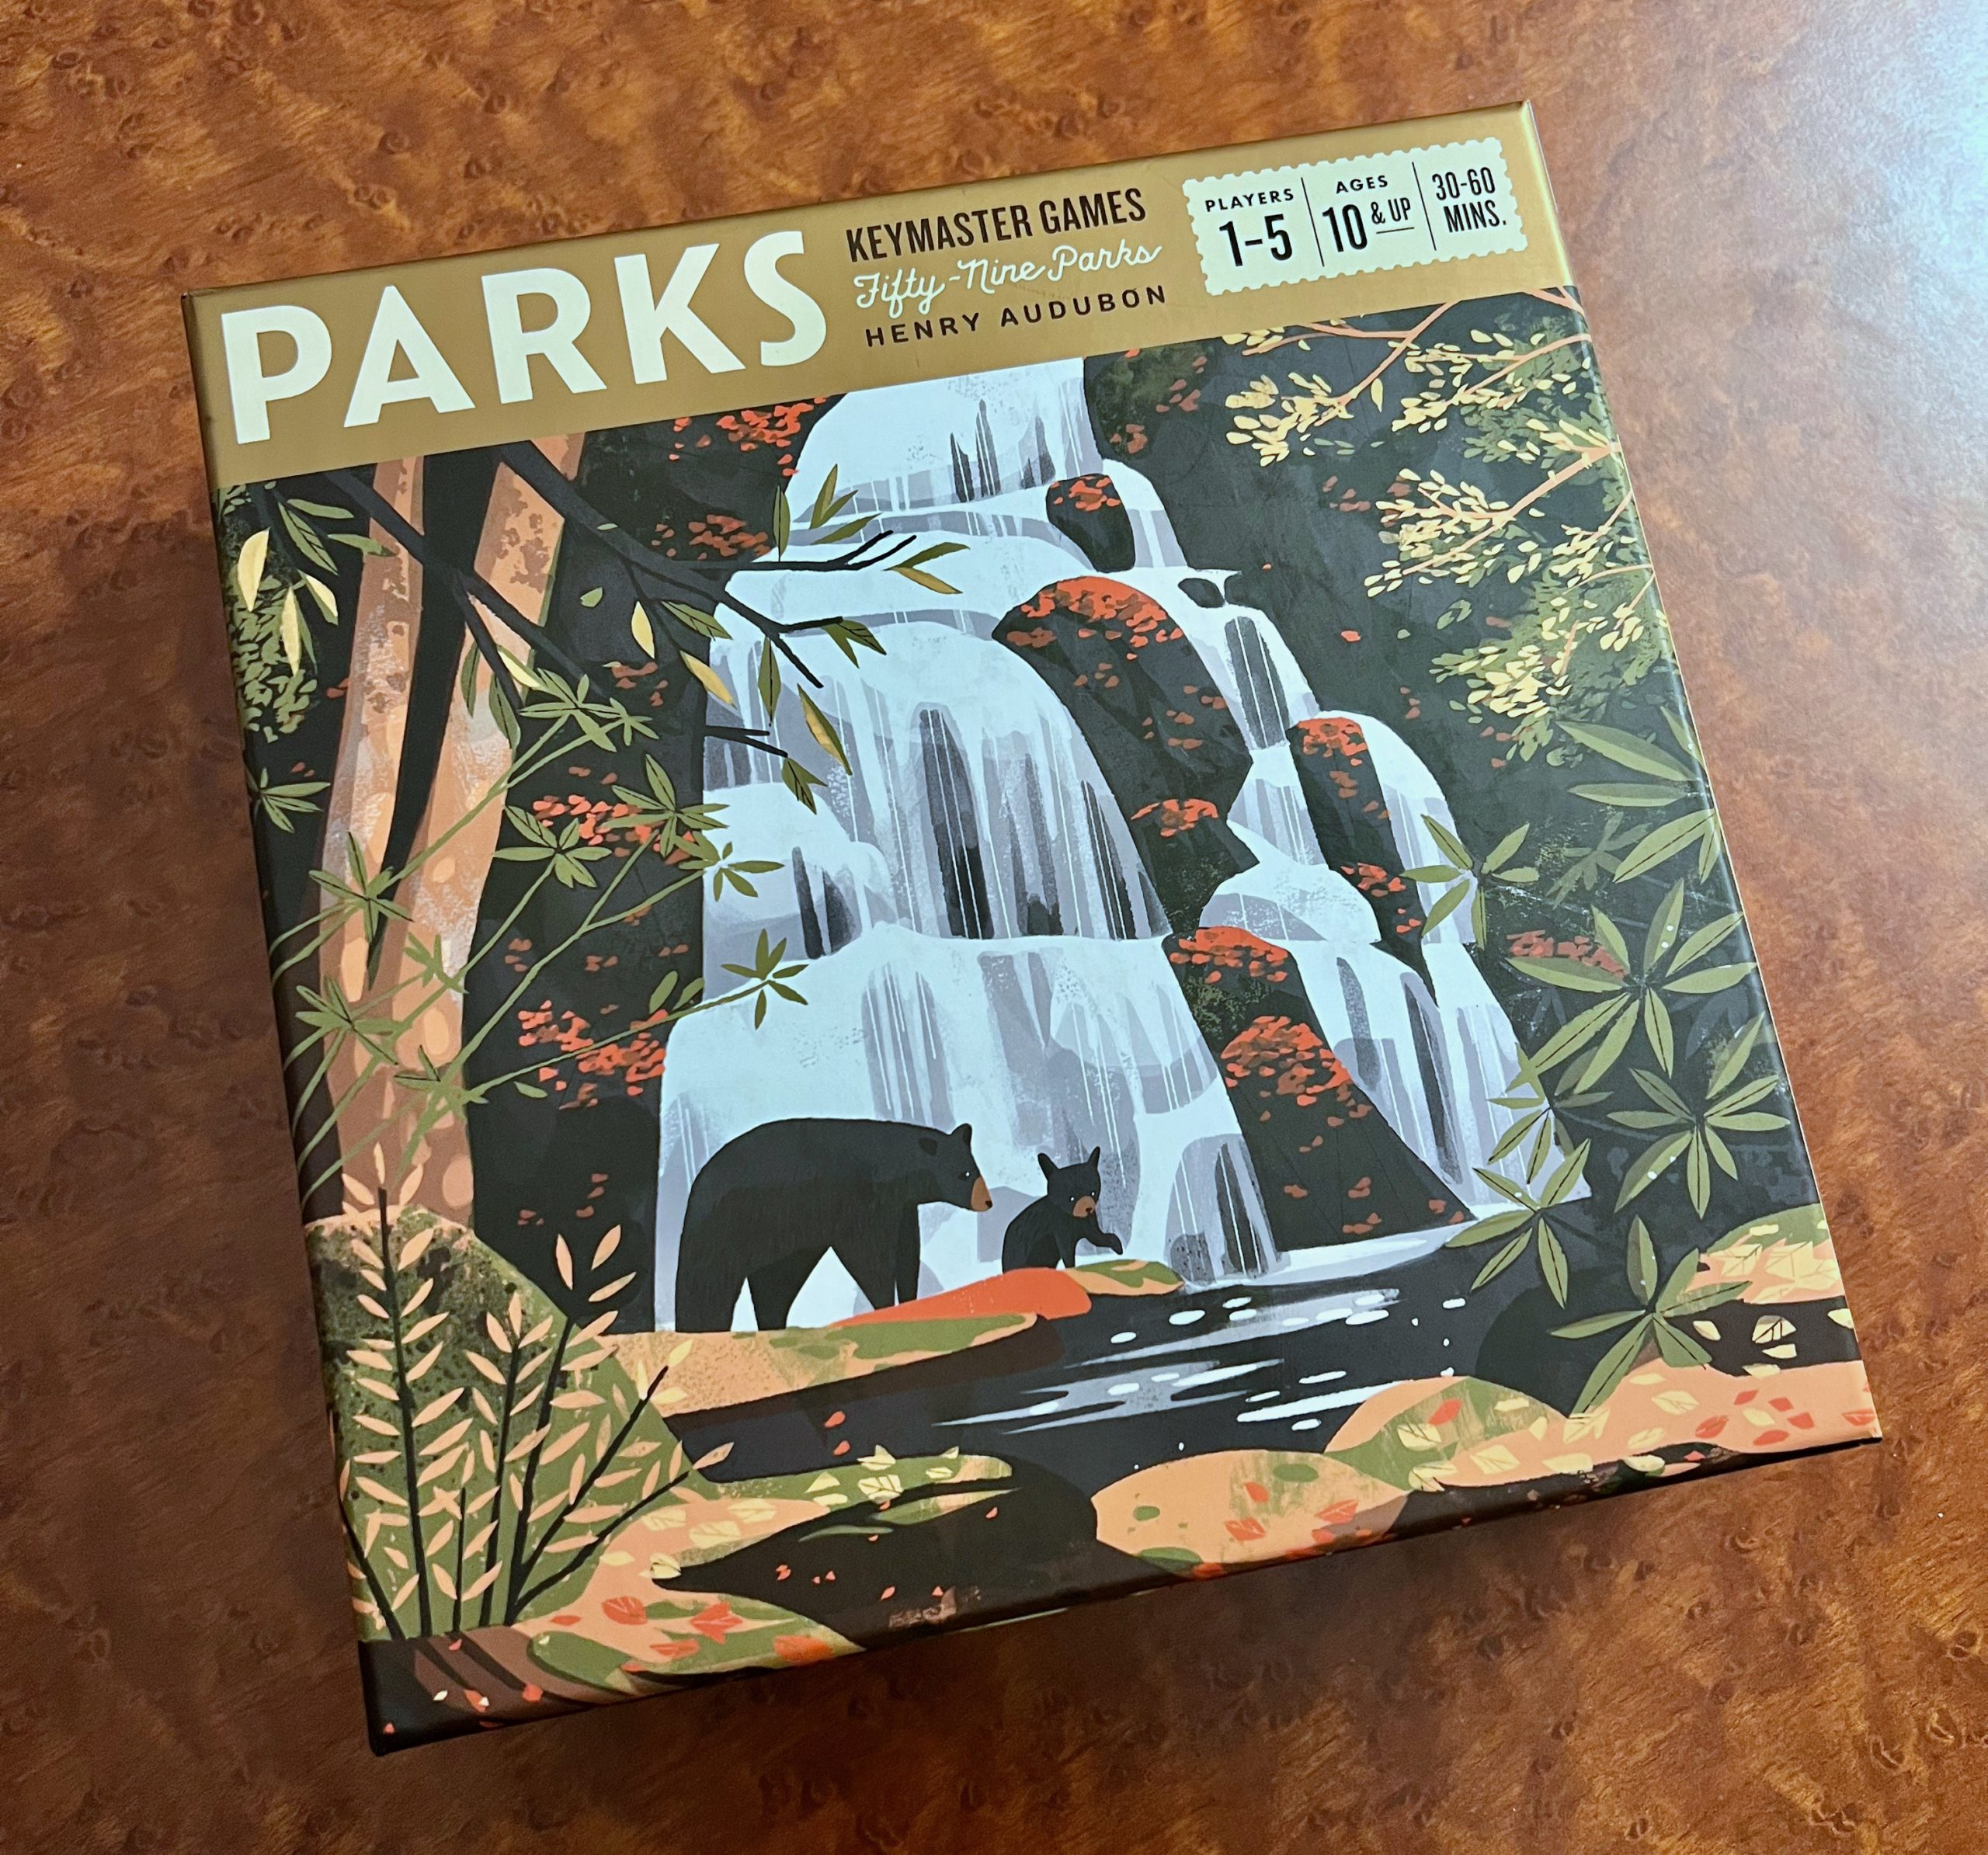 Parks box scaled